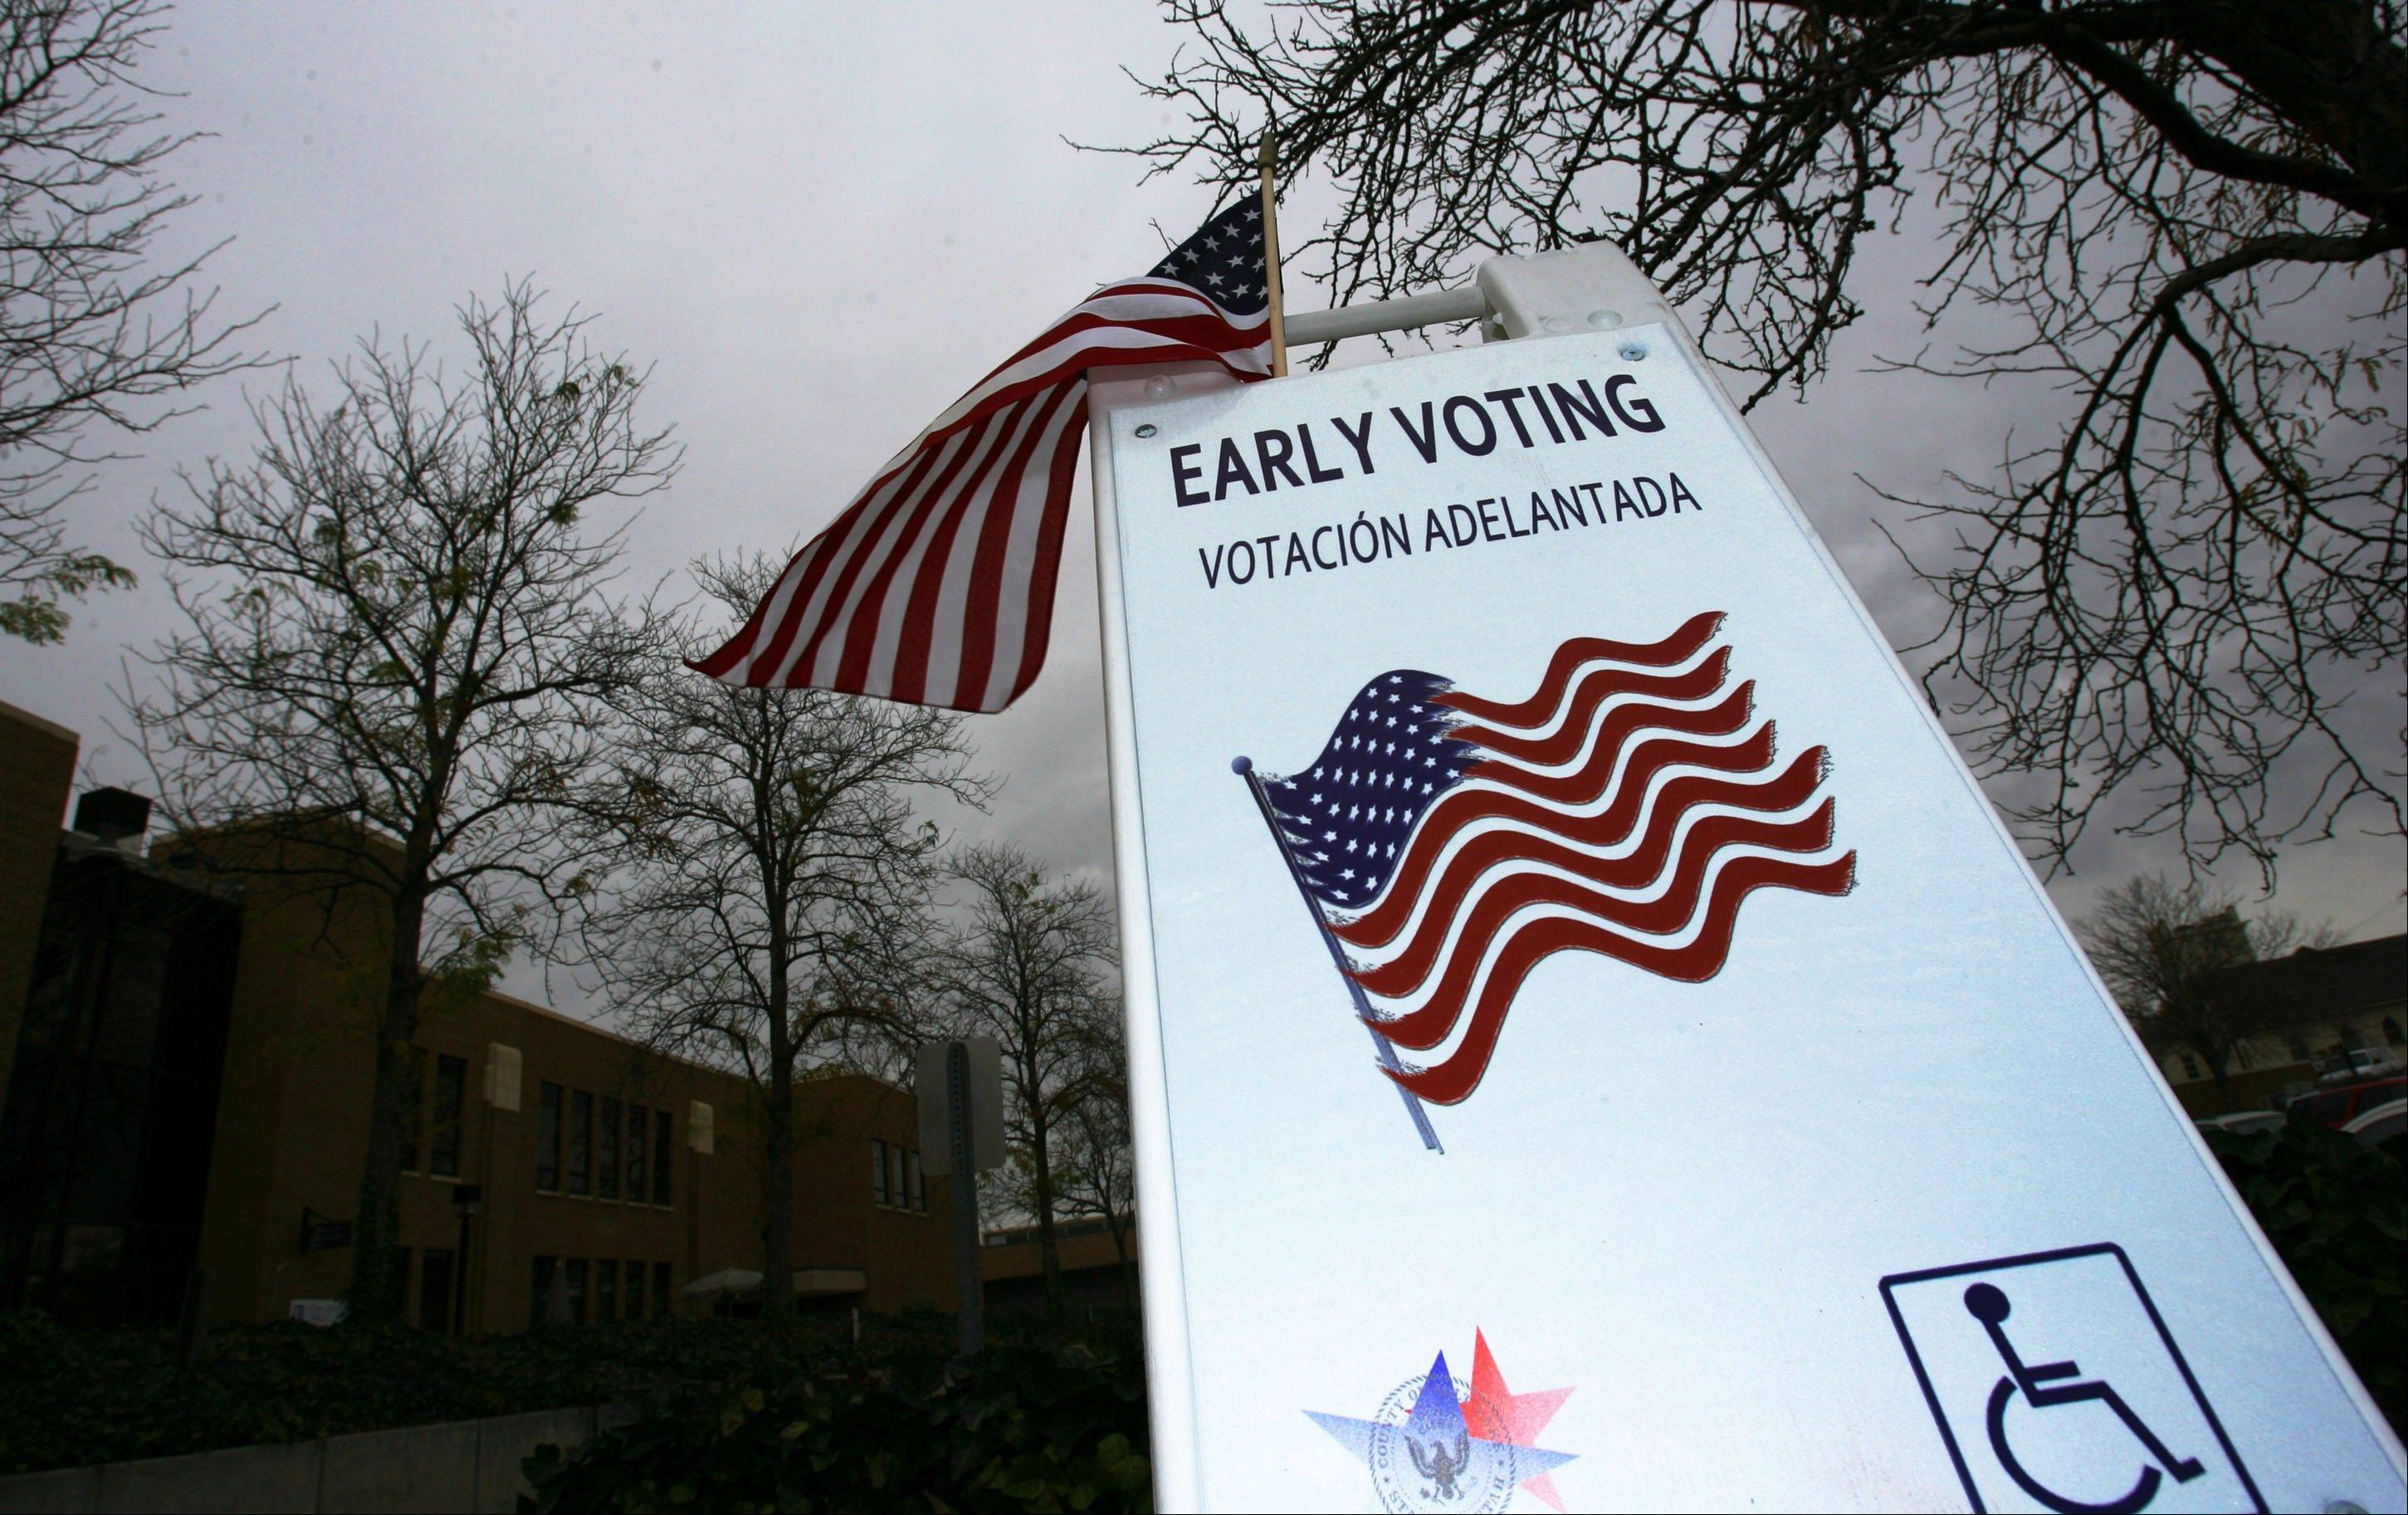 A sign reminds citizens to vote early at the Murray City Hall in Murray, Utah Thursday November 1, 2012.